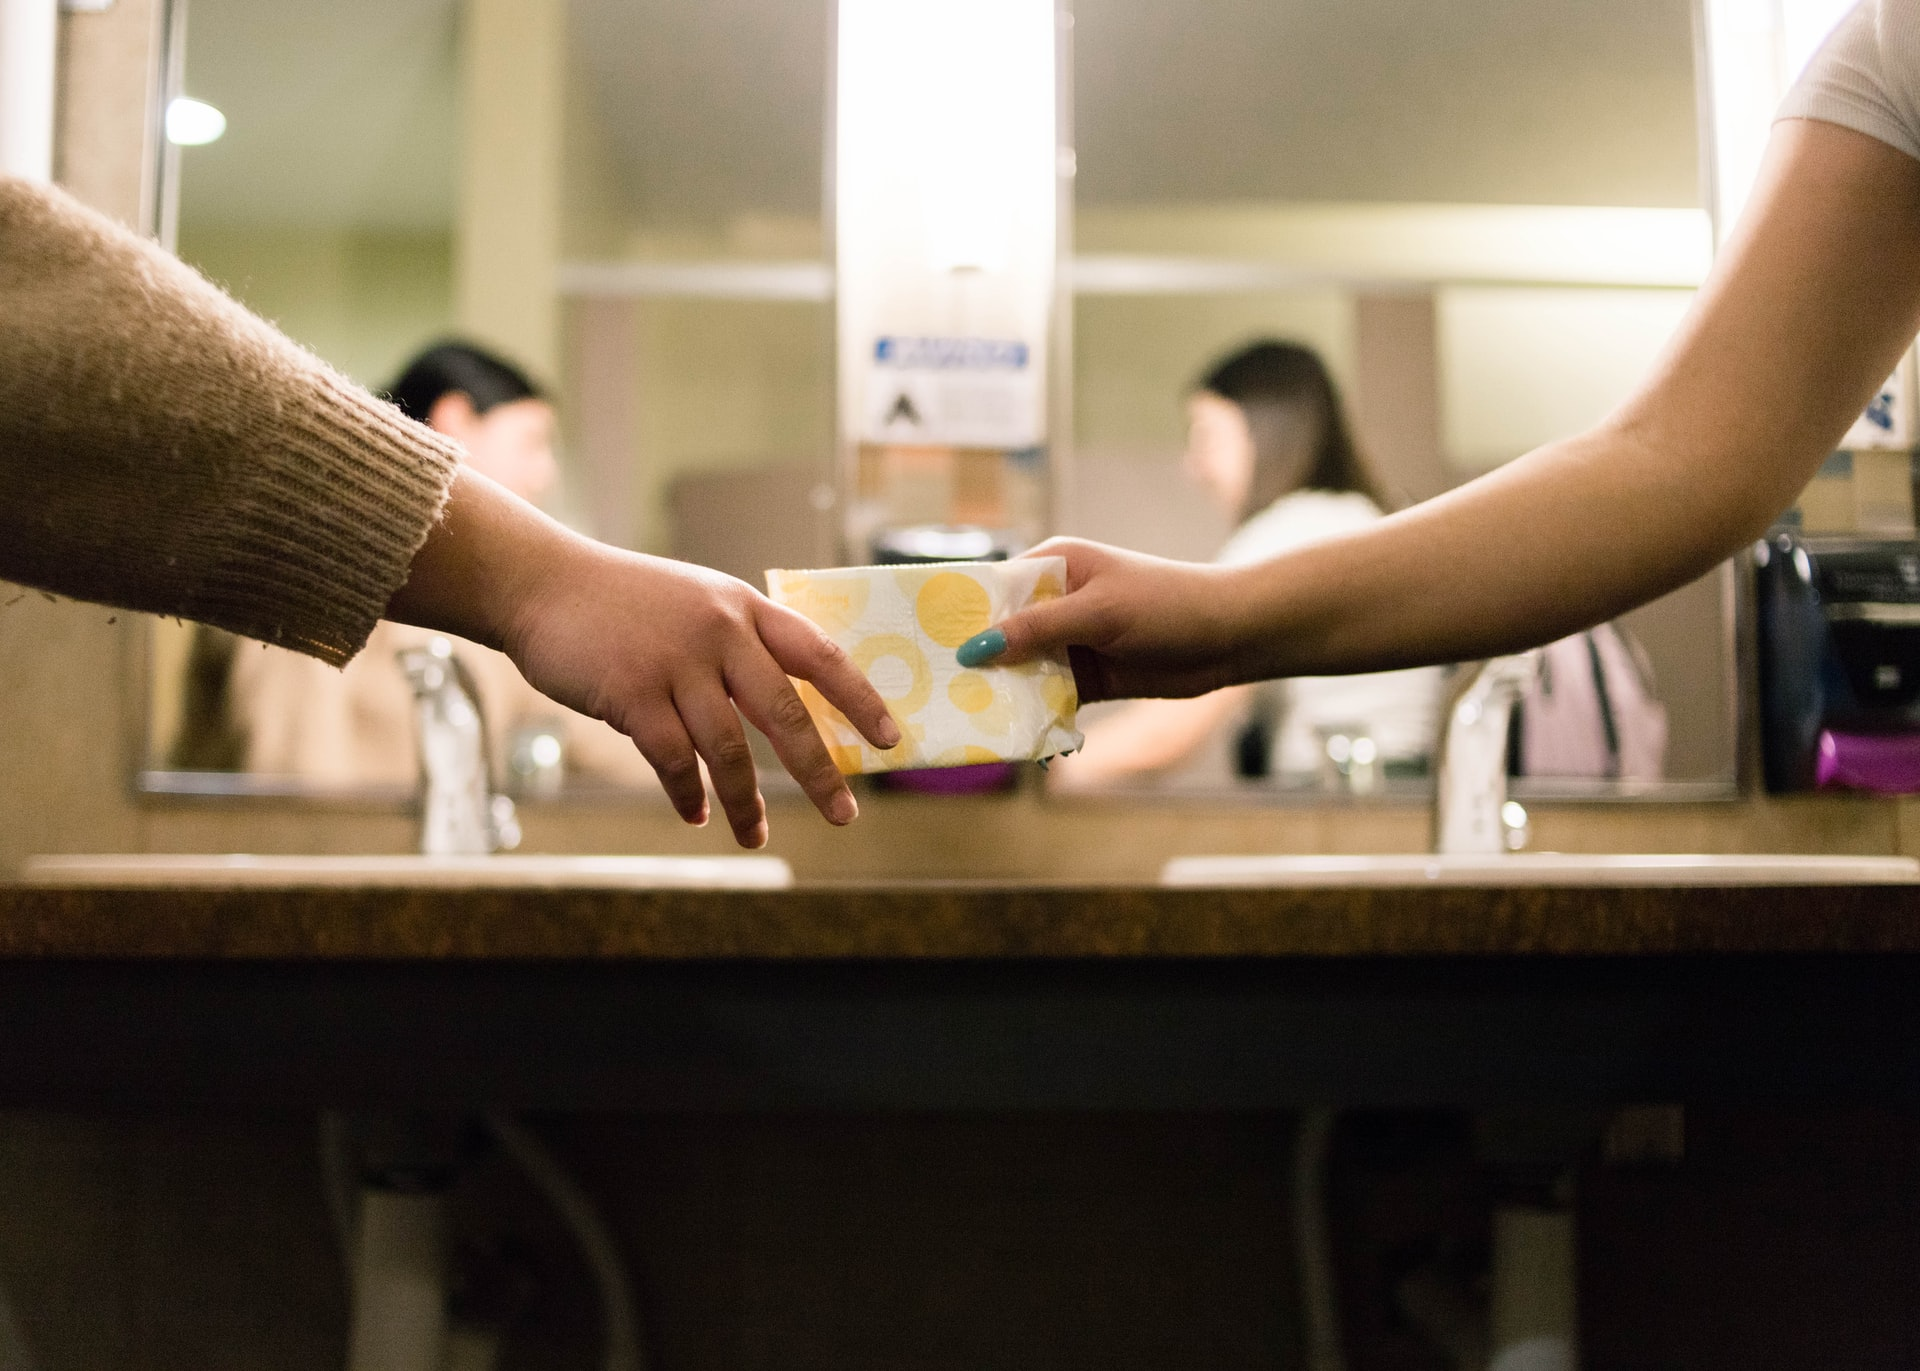 two girls sharing a menstrual pad in a bathroom